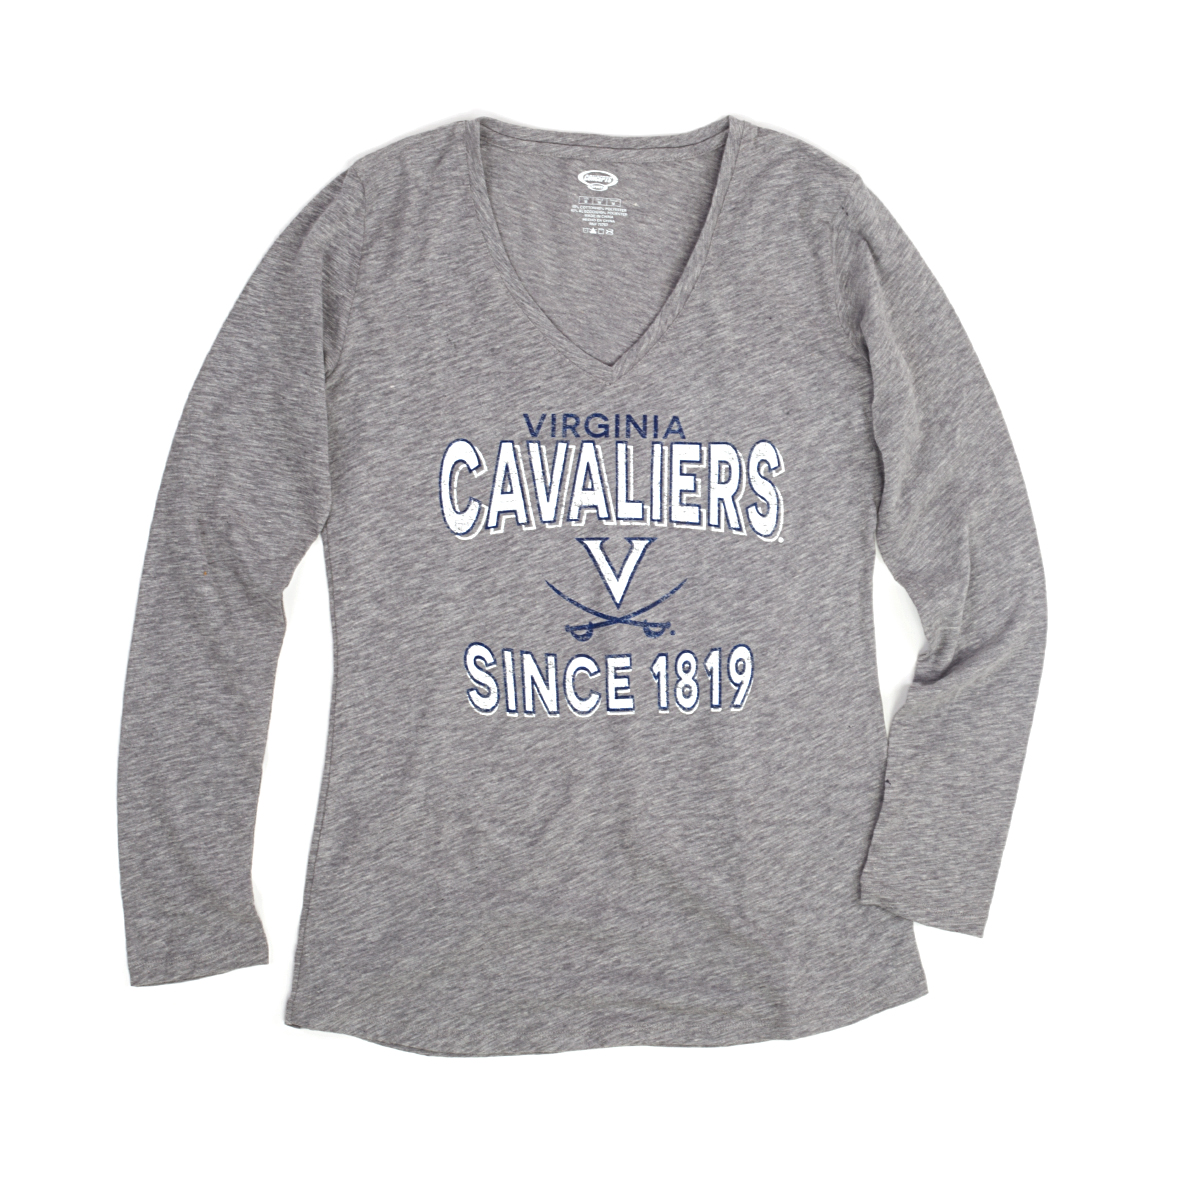 University of Virginia Cavaliers Ladies LS T-shirt